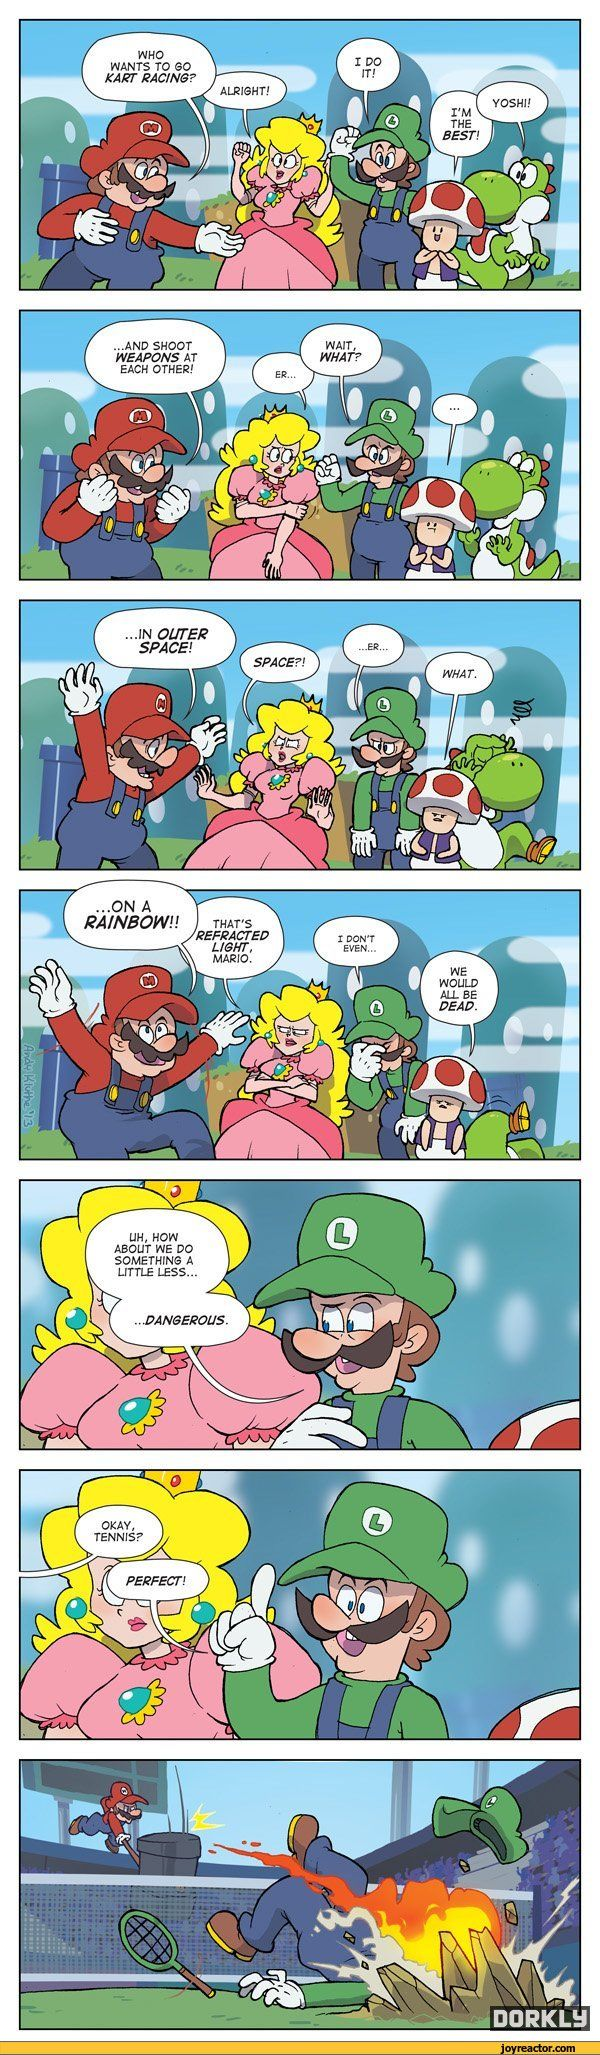 All Mario games should be rated M if you think about it